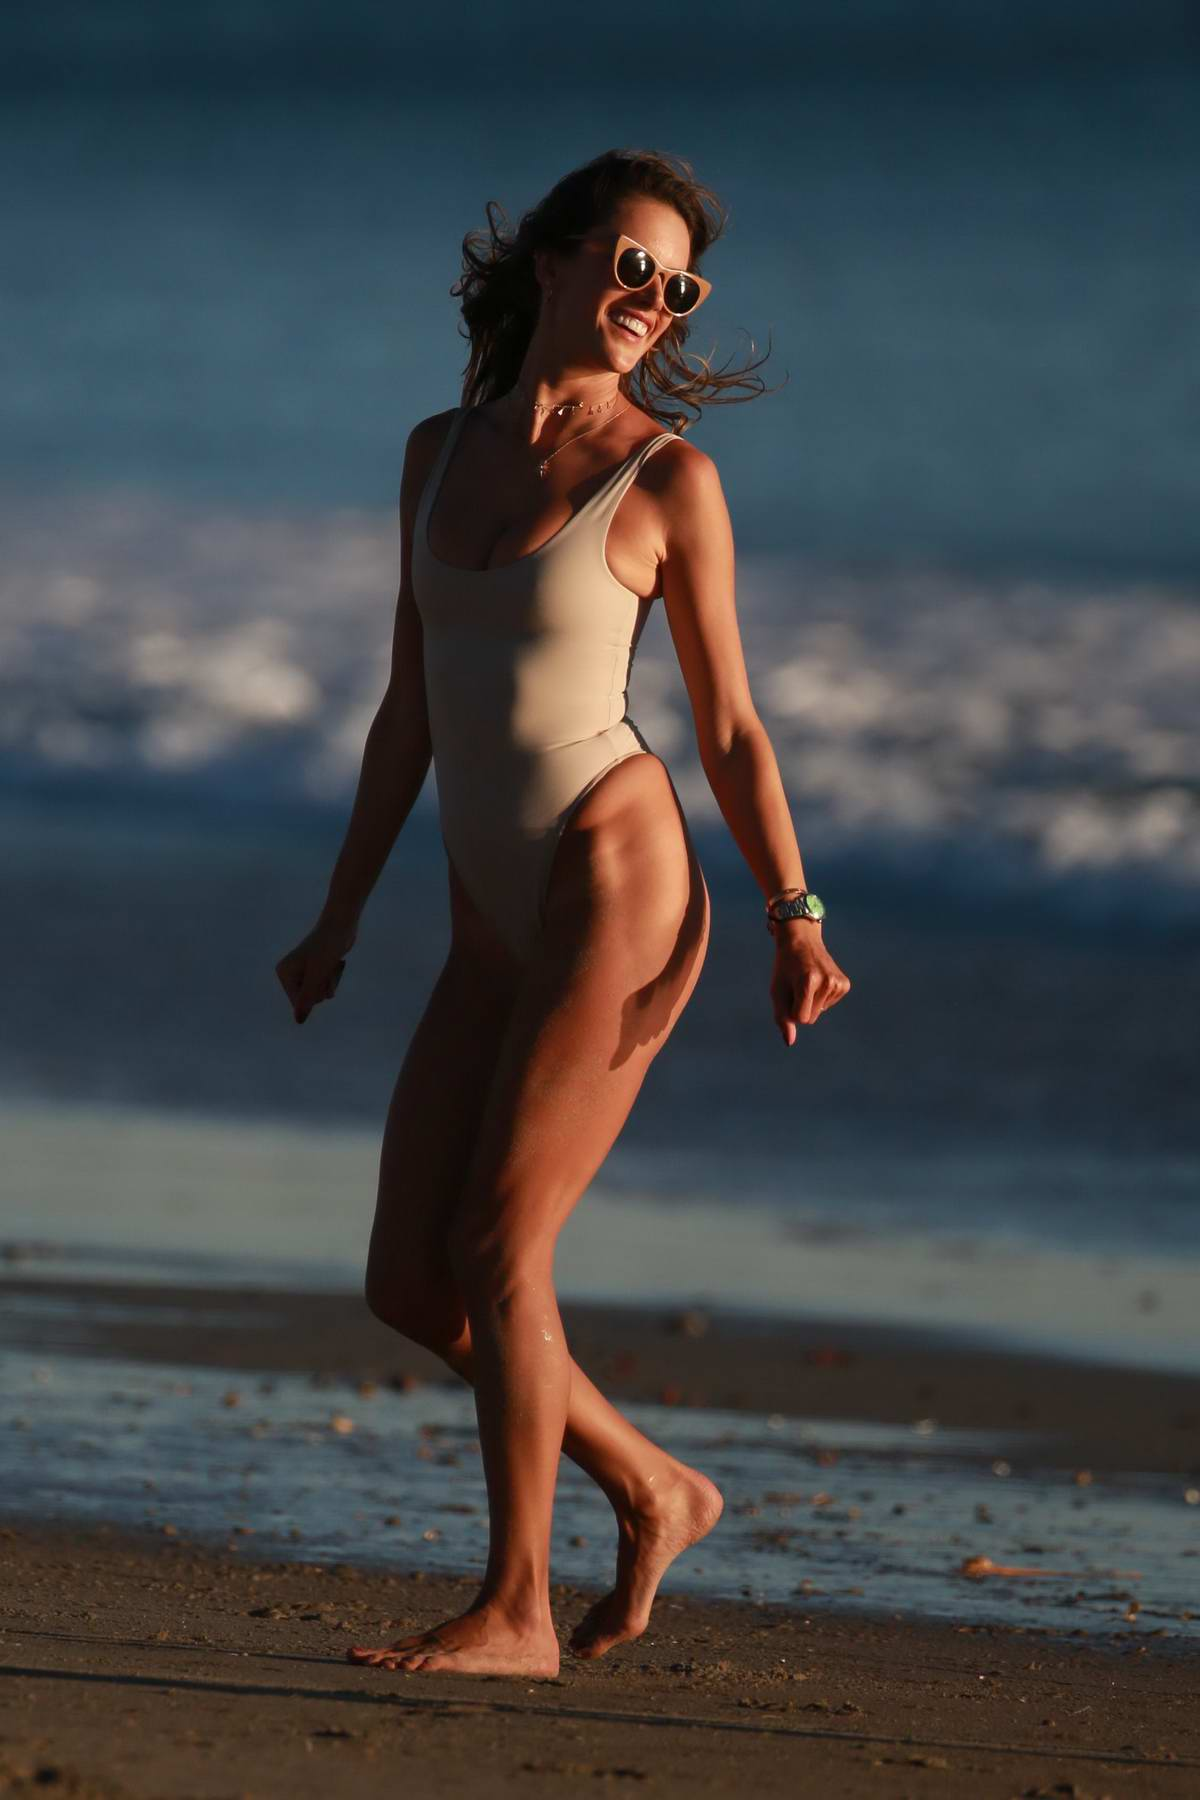 Alessandra Ambrosio in a beige swimsuit enjoys an evening at the beach in Malibu, California